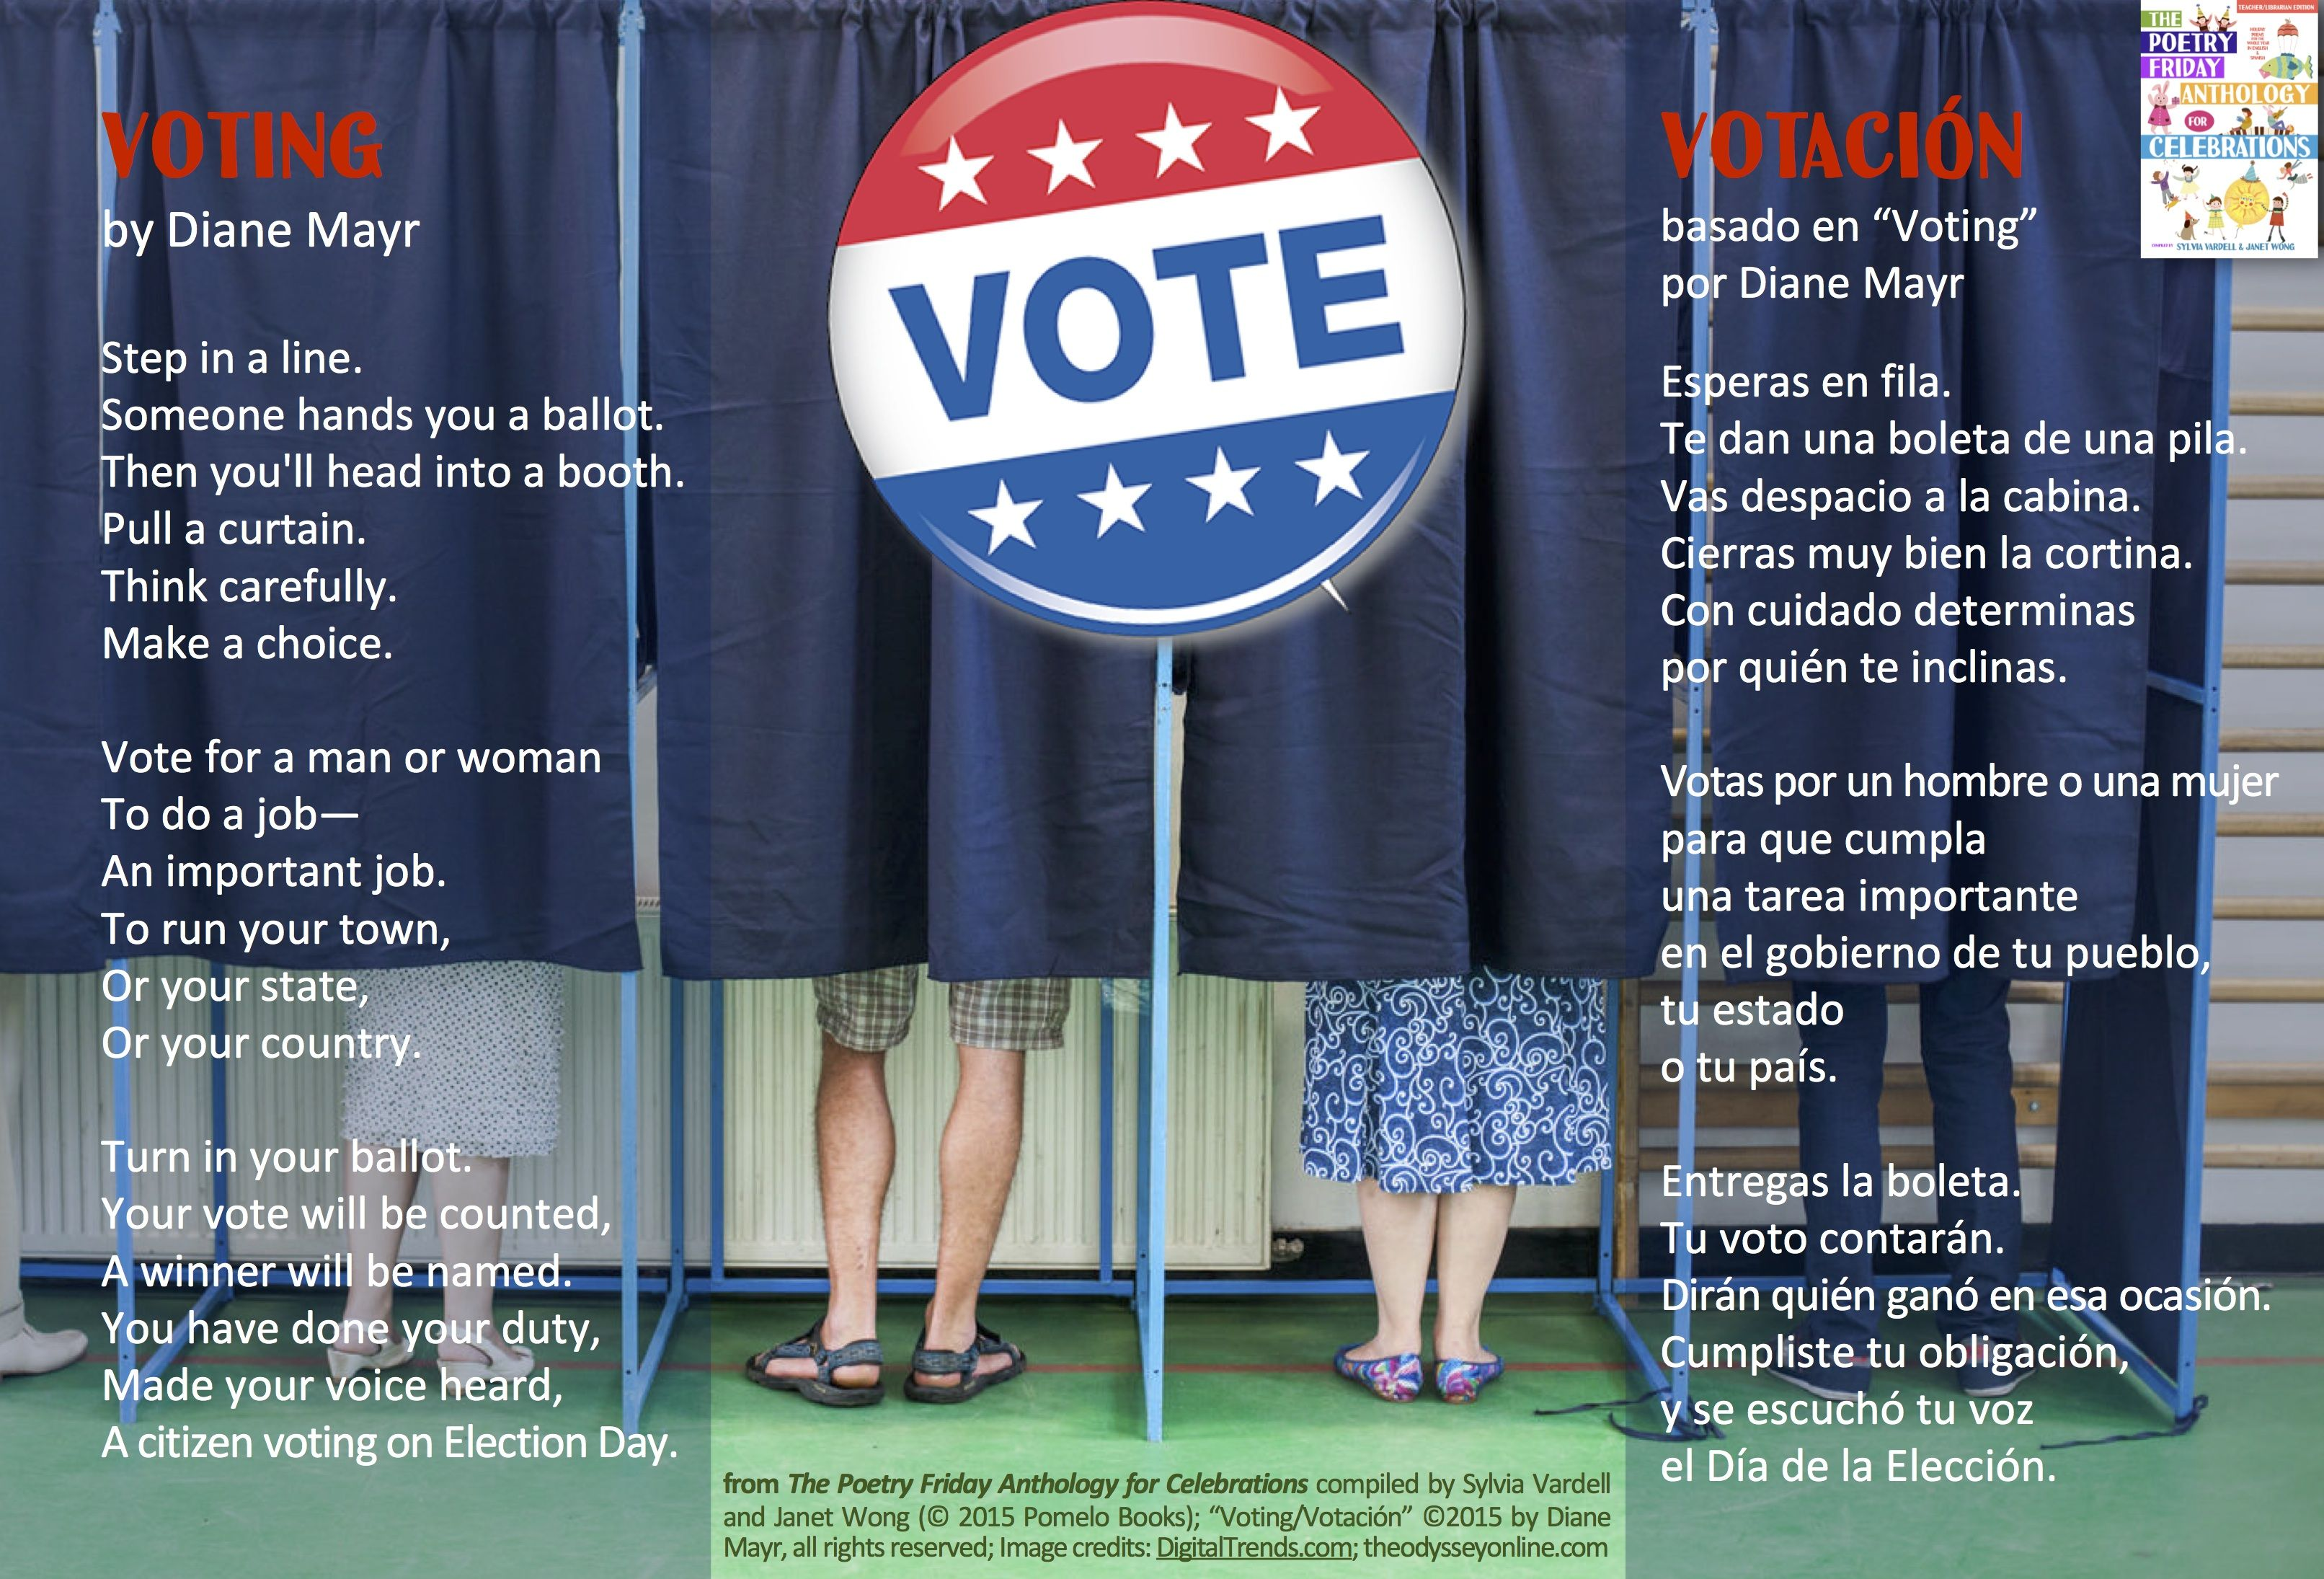 """Prepare students for Election Day with this poem, """"Voting"""" by Diane Mayr from THE POETRY FRIDAY ANTHOLOGY® FOR CELEBRATIONS edited by Sylvia Vardell and Janet Wong (Pomelo Books, 2015)"""